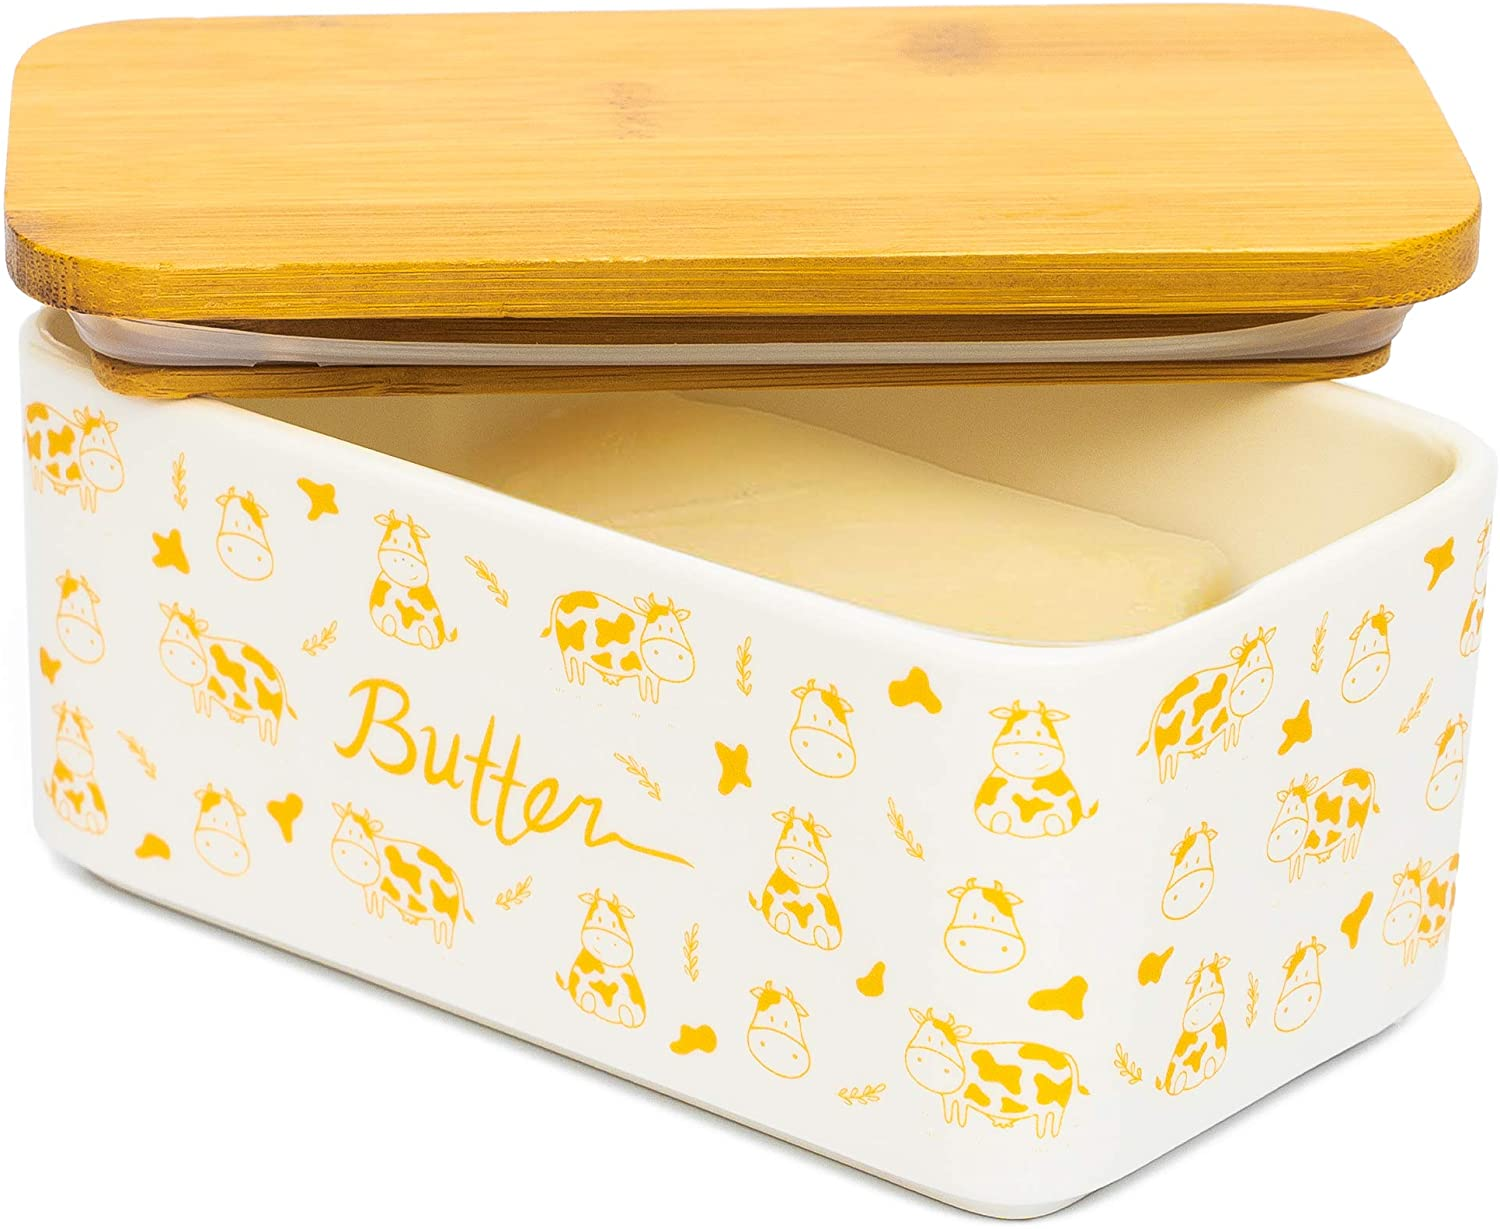 Lumicook porcelain butter dish with lid, Natural bamboo lid, seal included for airtight butter dish, butter holder easily fits 2 sticks of butter